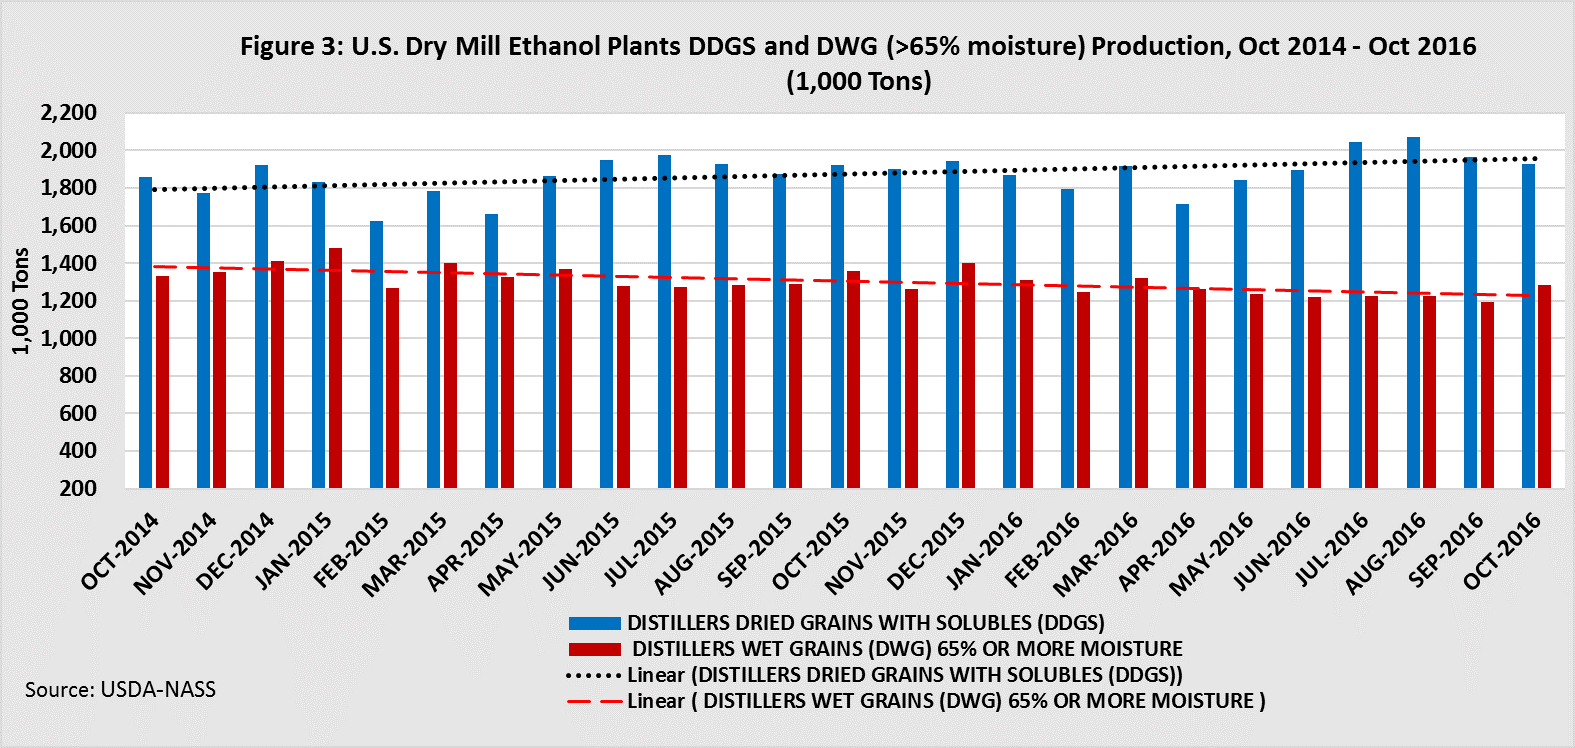 U.S. Dry Mill Ethanol Plants DDGS and DWG production